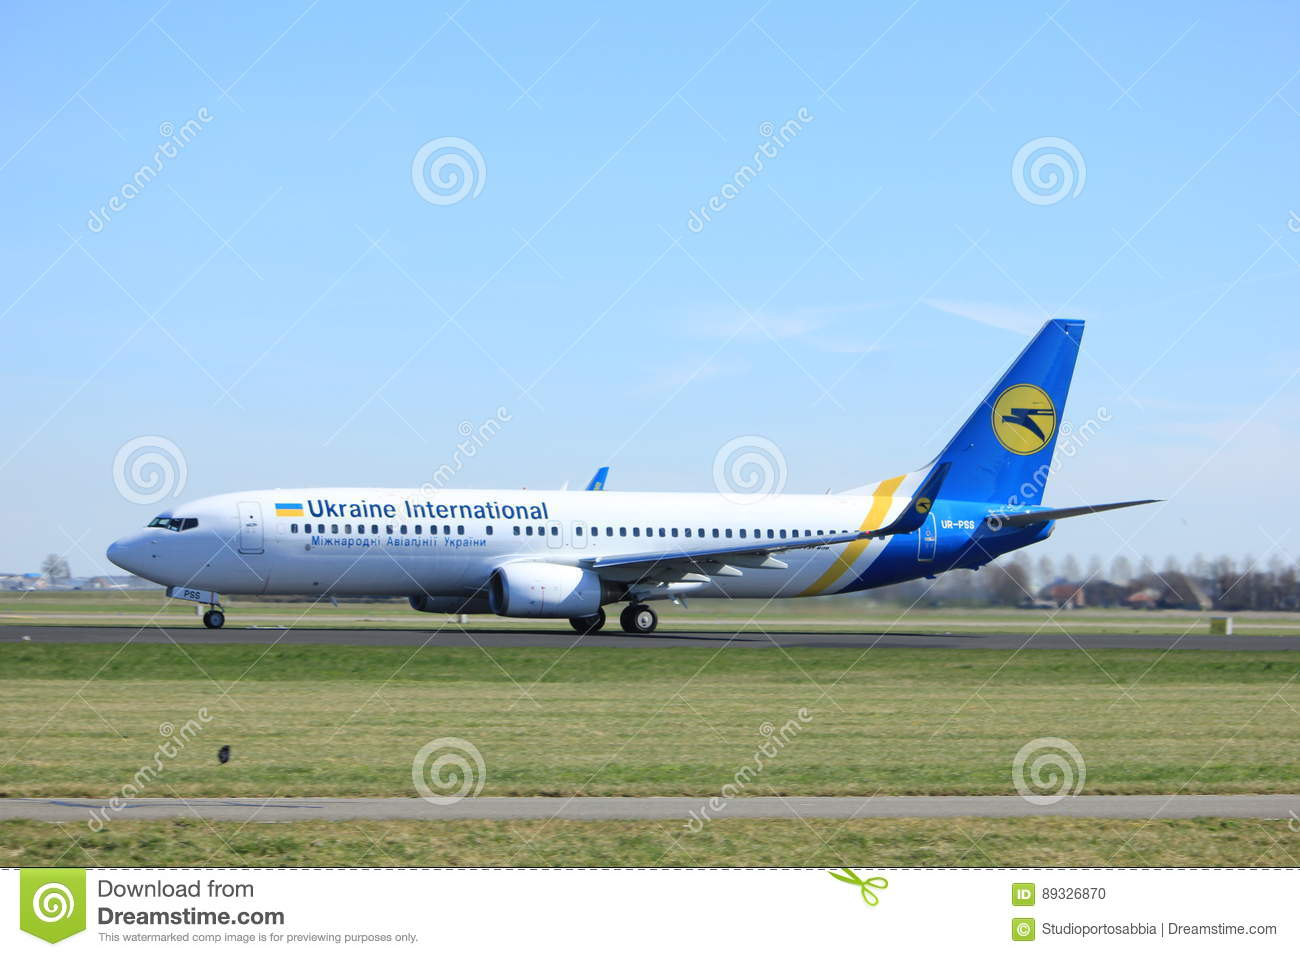 Amsterdam holandie - Marzec 25th, 2017: UR-PSS Ukraine International Airlines Boeing 737-800